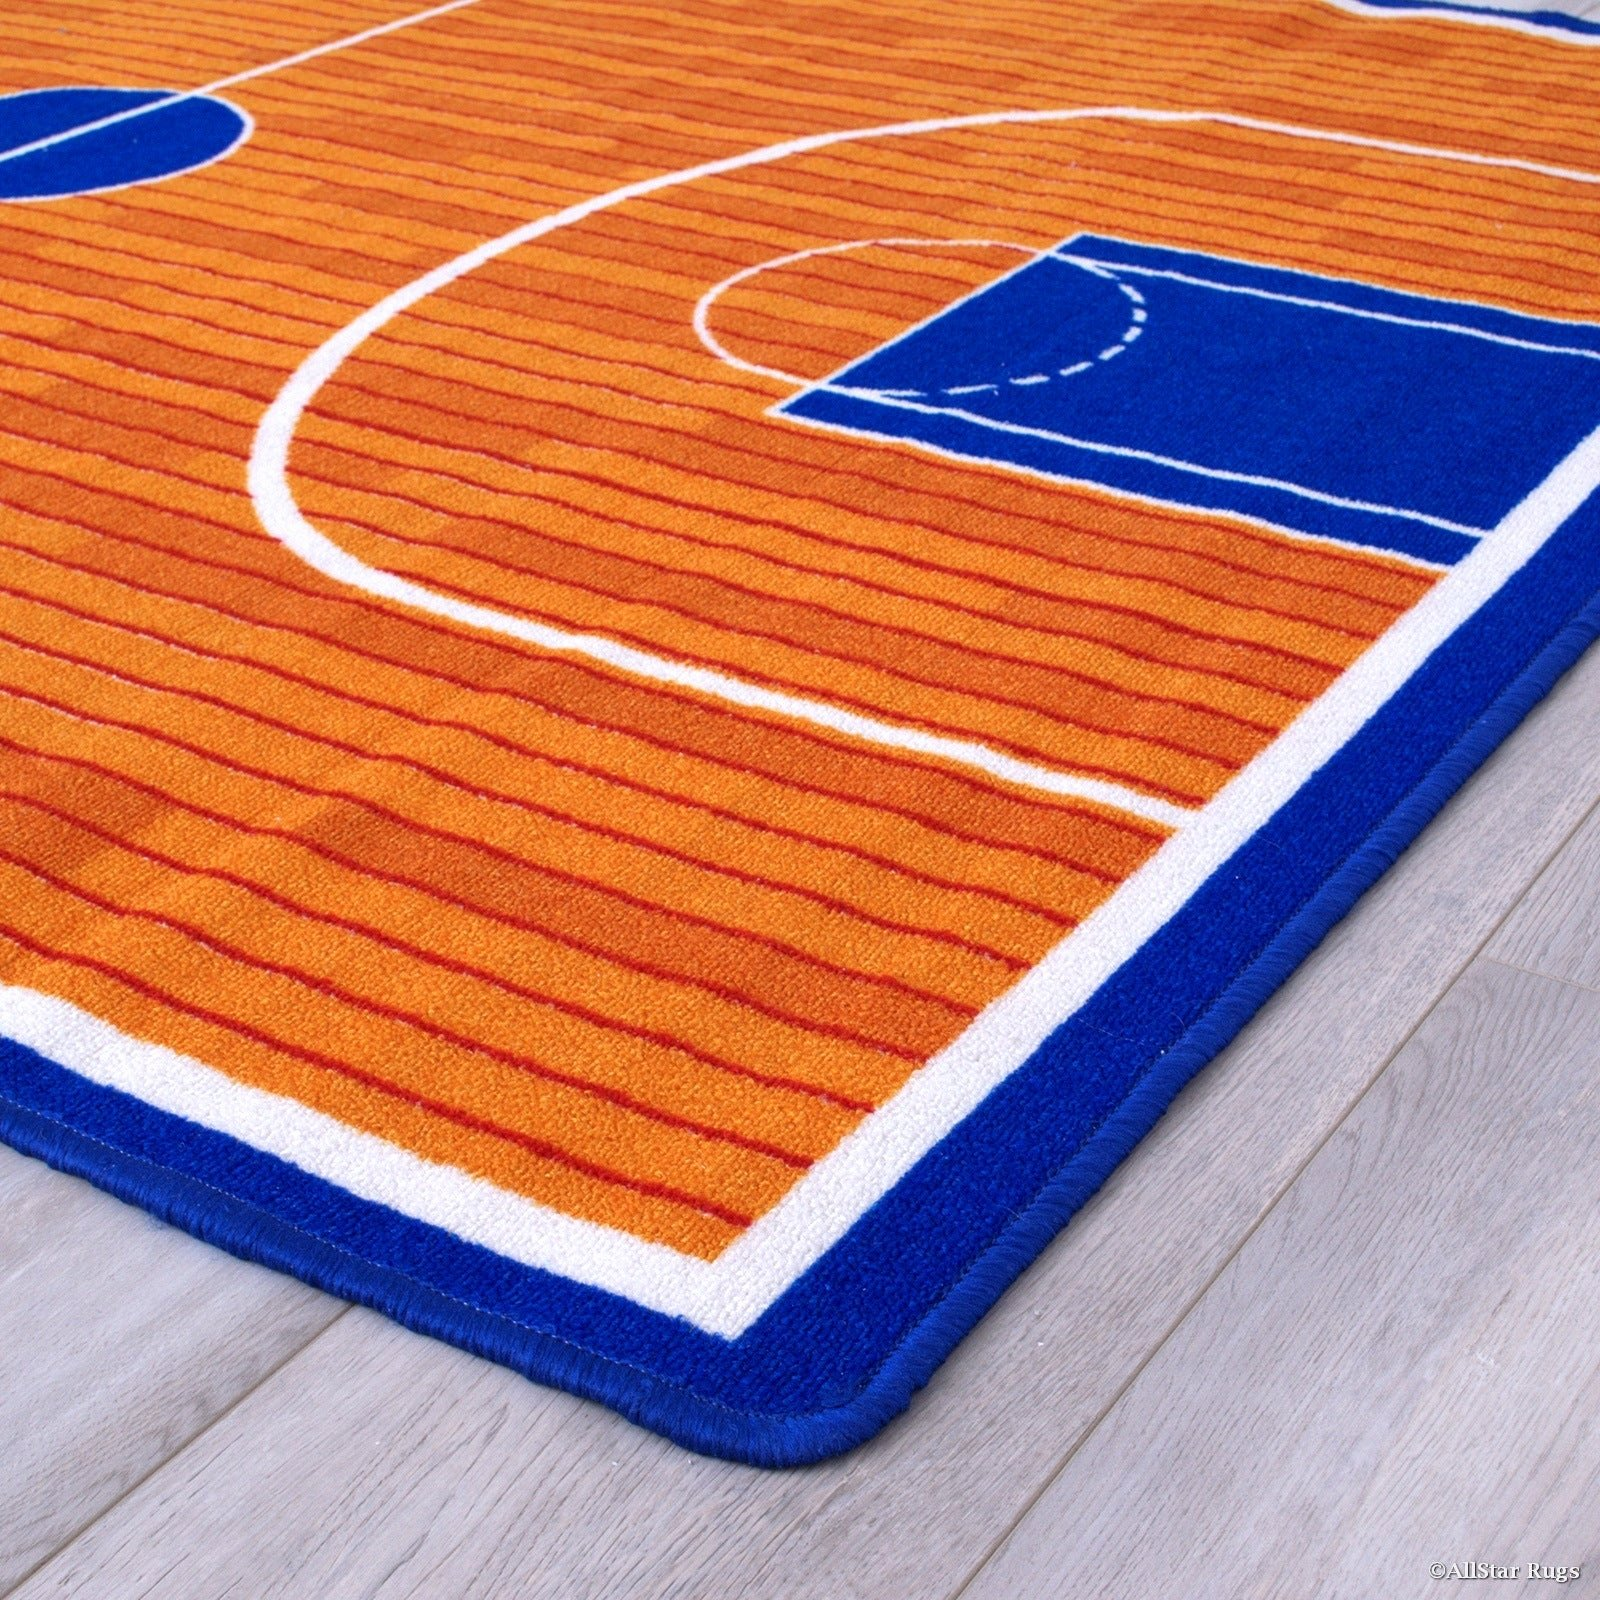 Basketball Half Court Rug Lovely Basketball Half Court Rug Uniquely Modern Rugs